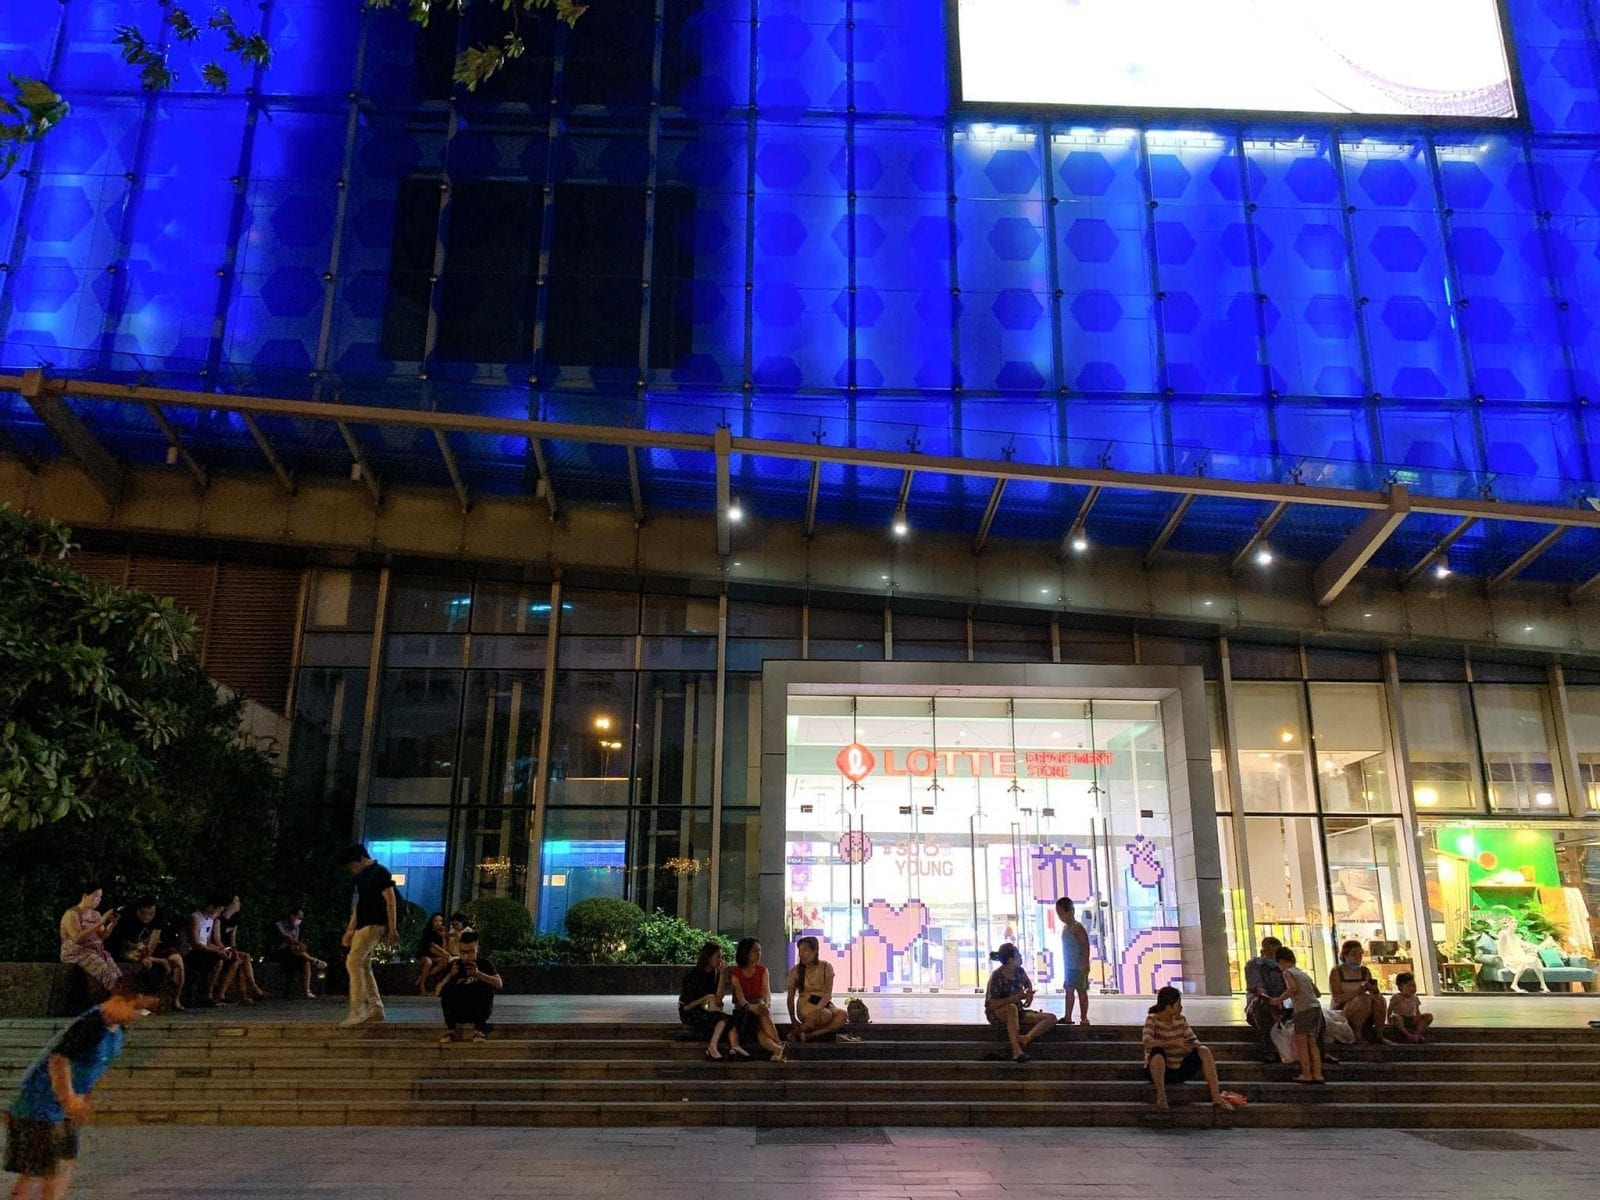 Image of the entrance of the Lotte Department Store in Hanoi, Vietnam